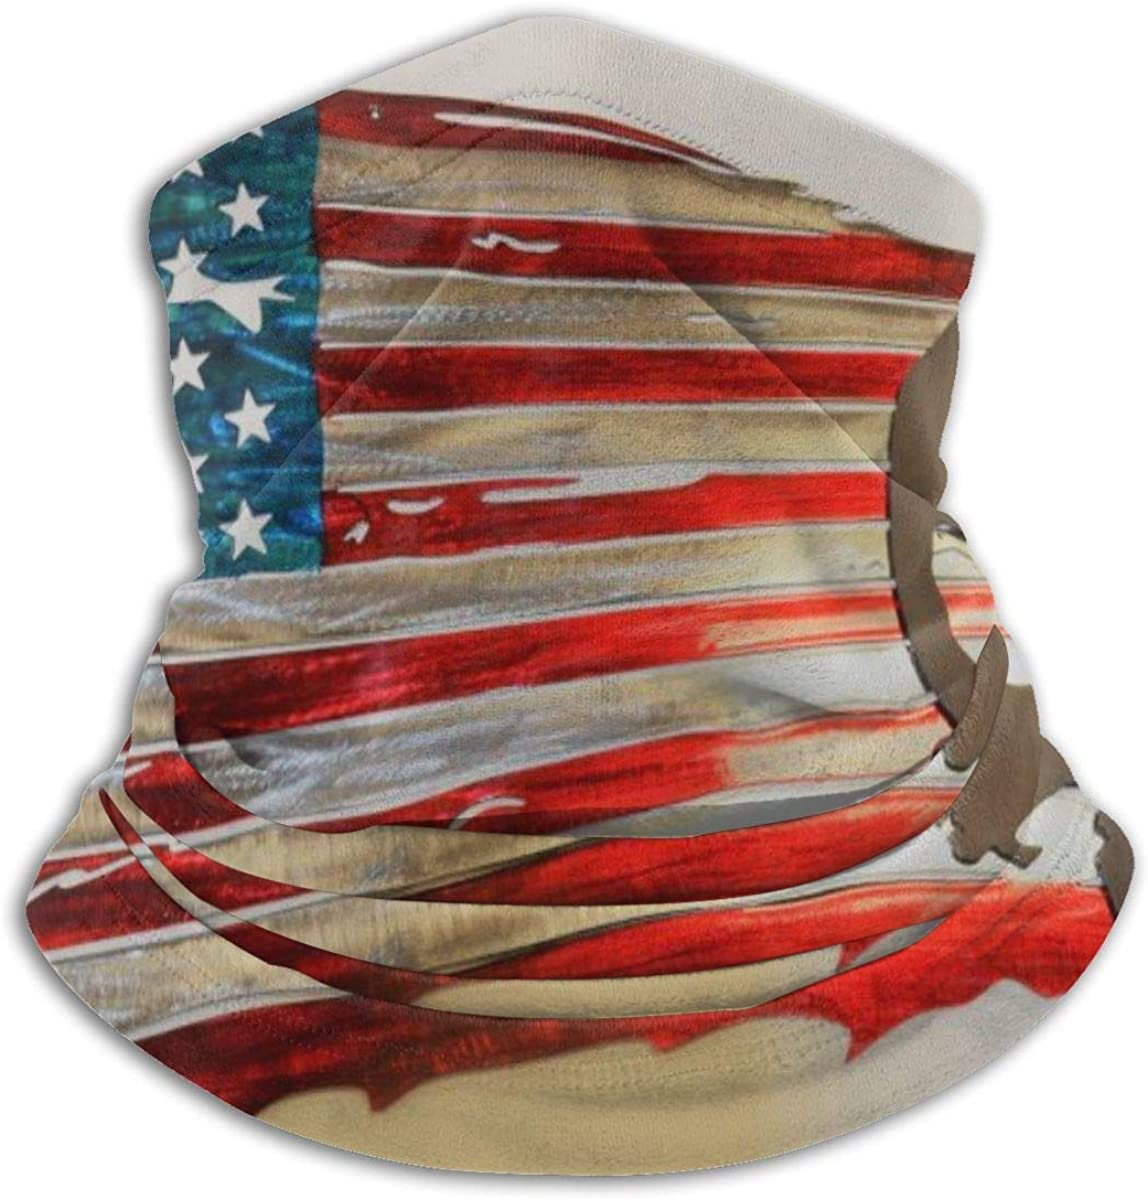 American Flag Punisher Fleece Neck Warmer Gaiter Soft Microfiber Headwear Face Scarf Mask for Winter Cold Weather & Keep Warm for Mens Womens